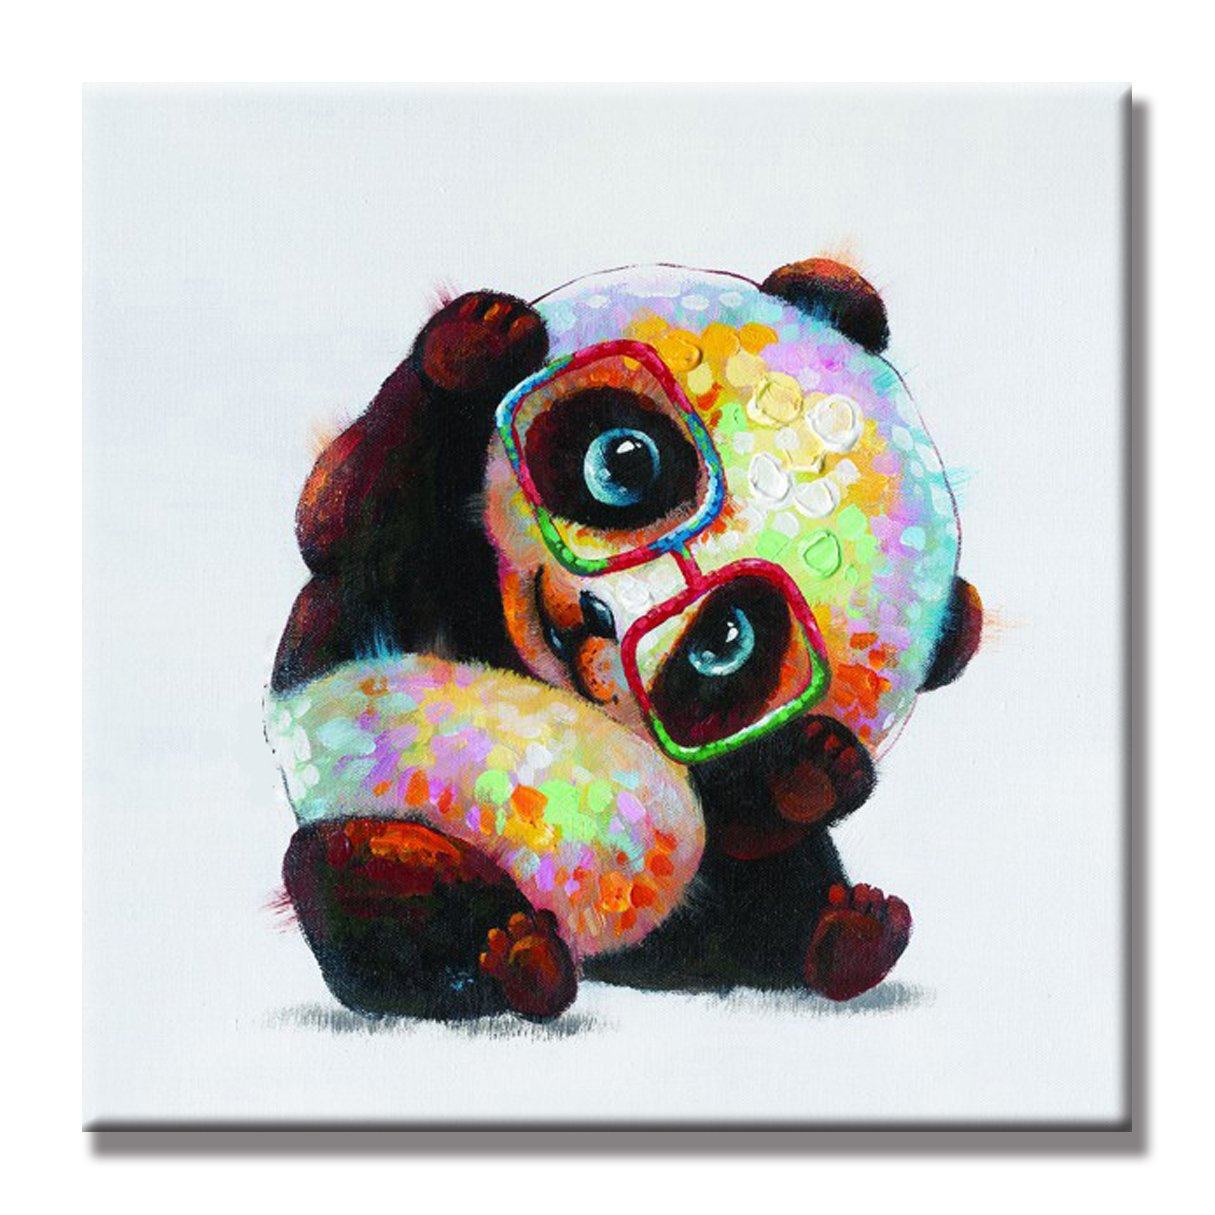 SEVEN WALL ARTS 100% Hand Painted Oil Painting Animal Cute Panda with Stretched Frame 24 x 24 Inch (Panda Wears Glasses, 24 x 24 Inch)